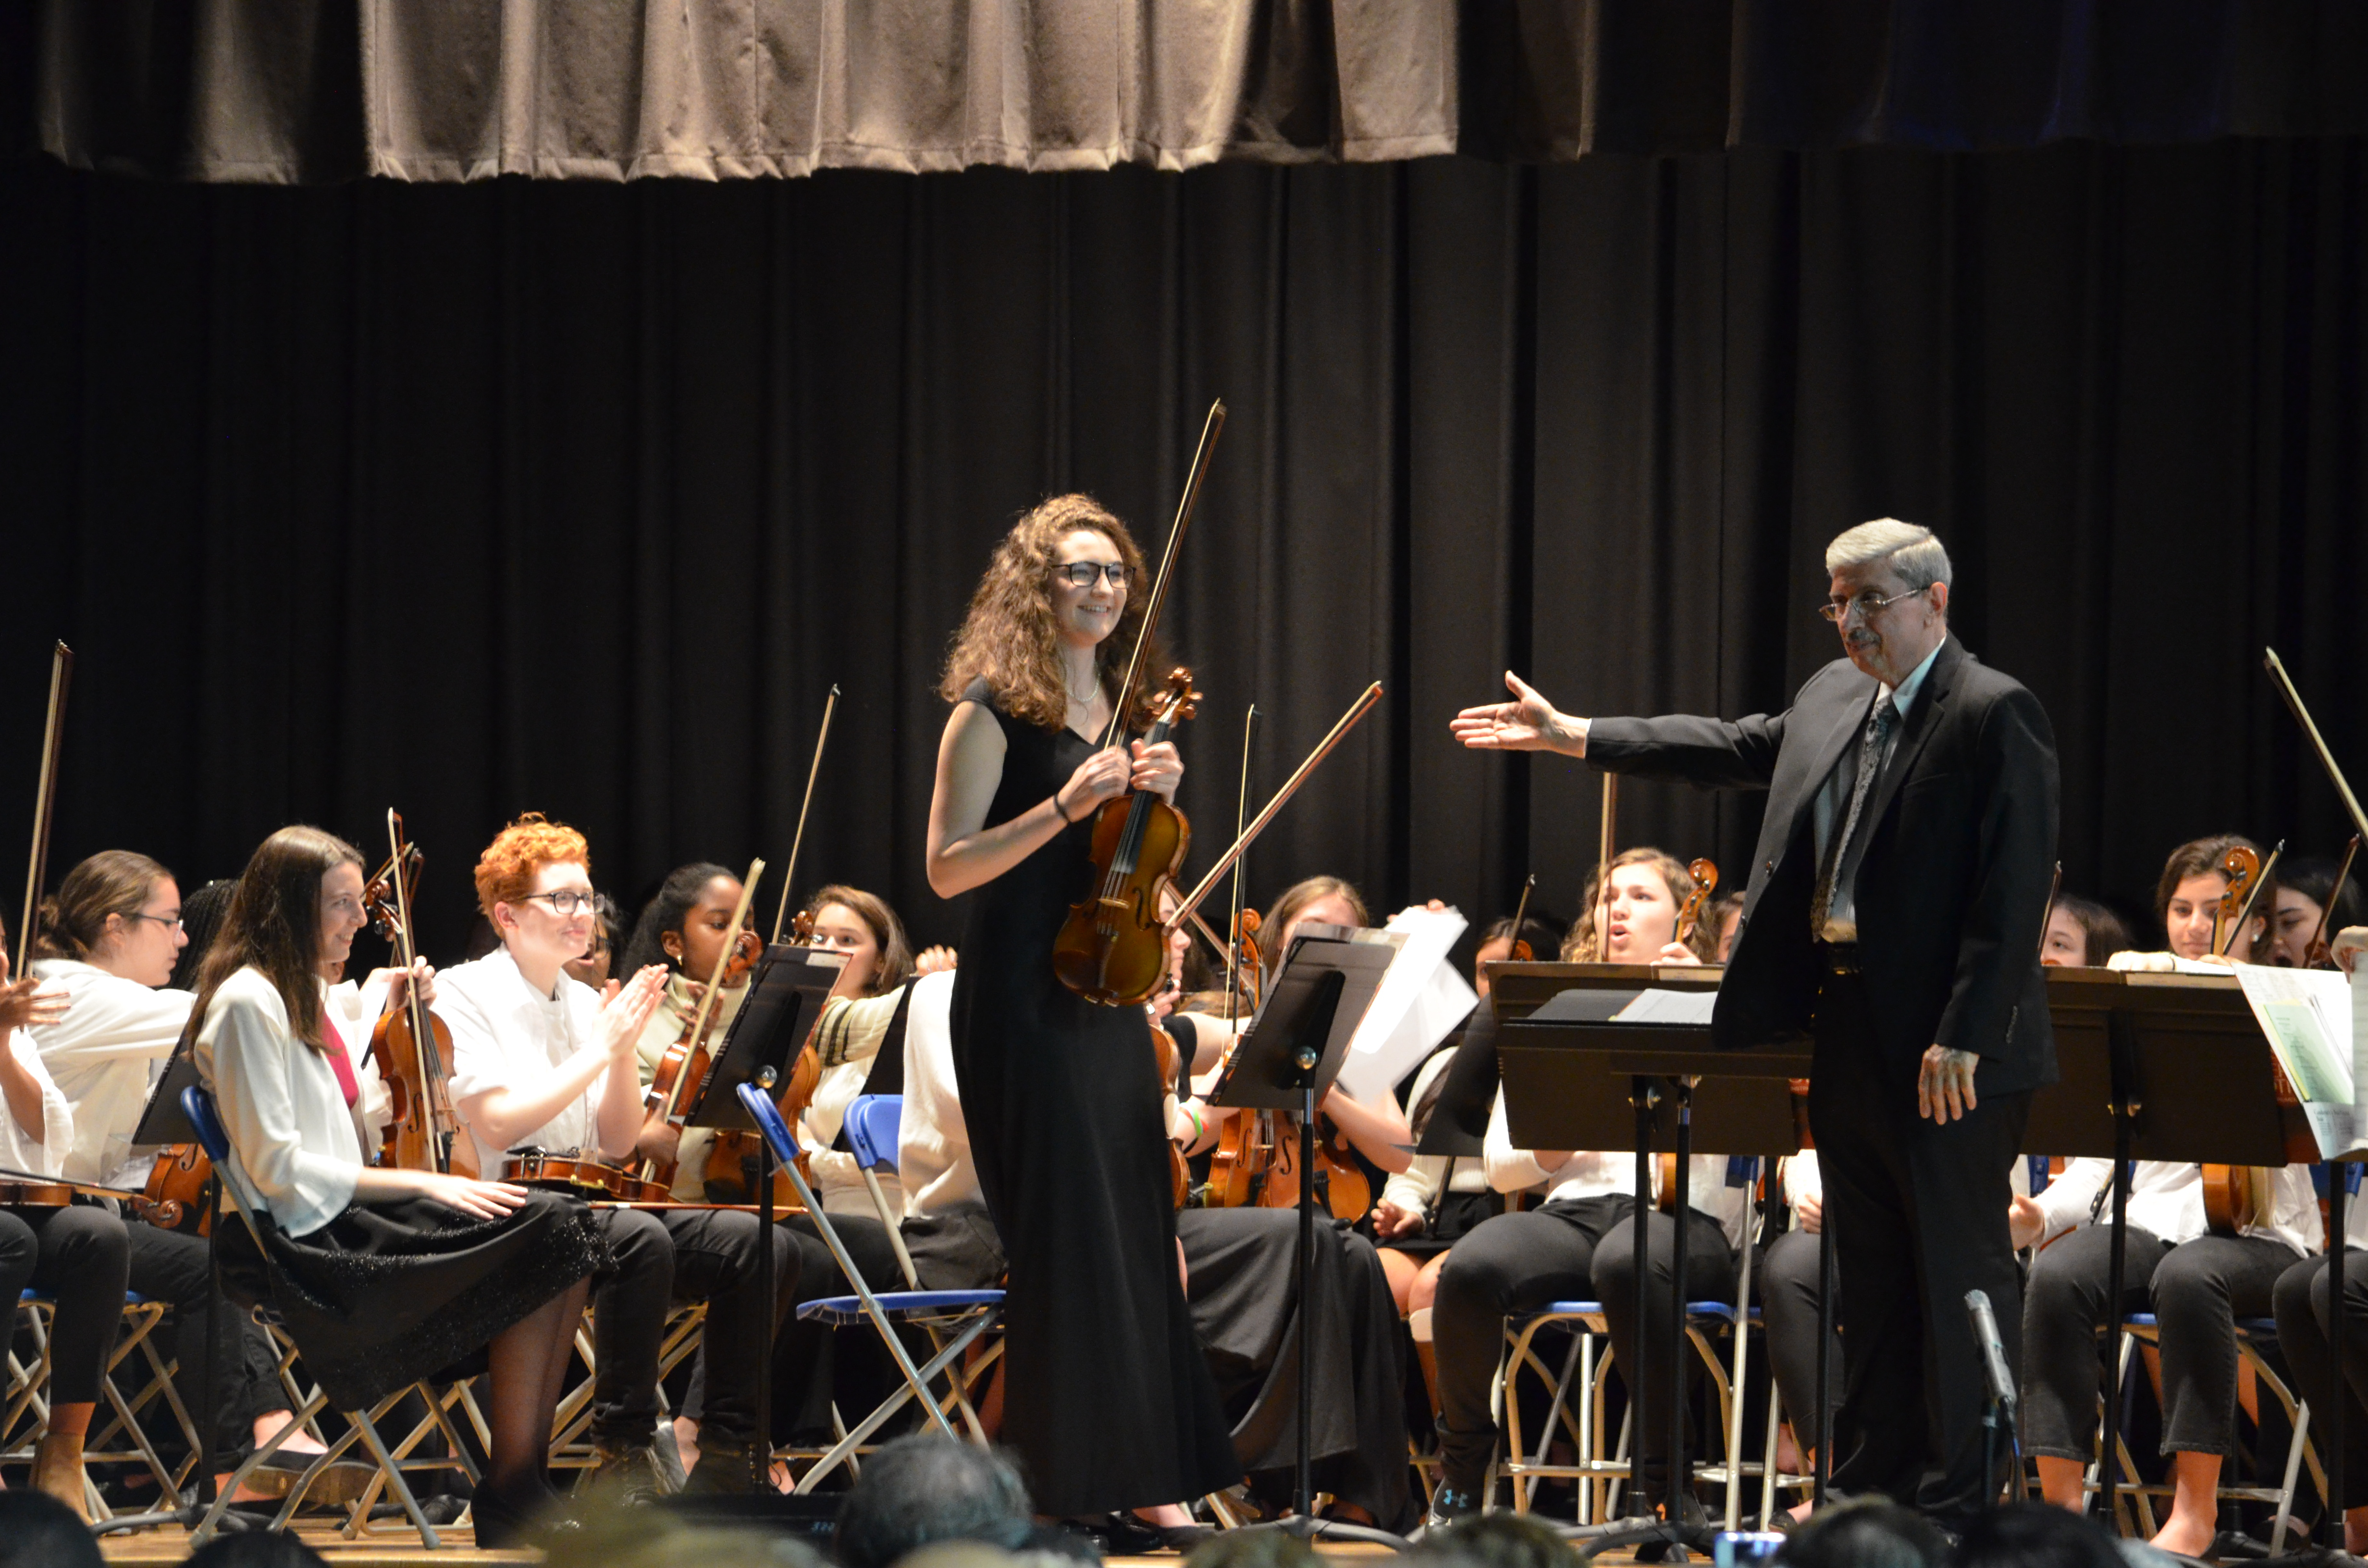 Solo by Olivia Ross, orchestra conducted by John Benza